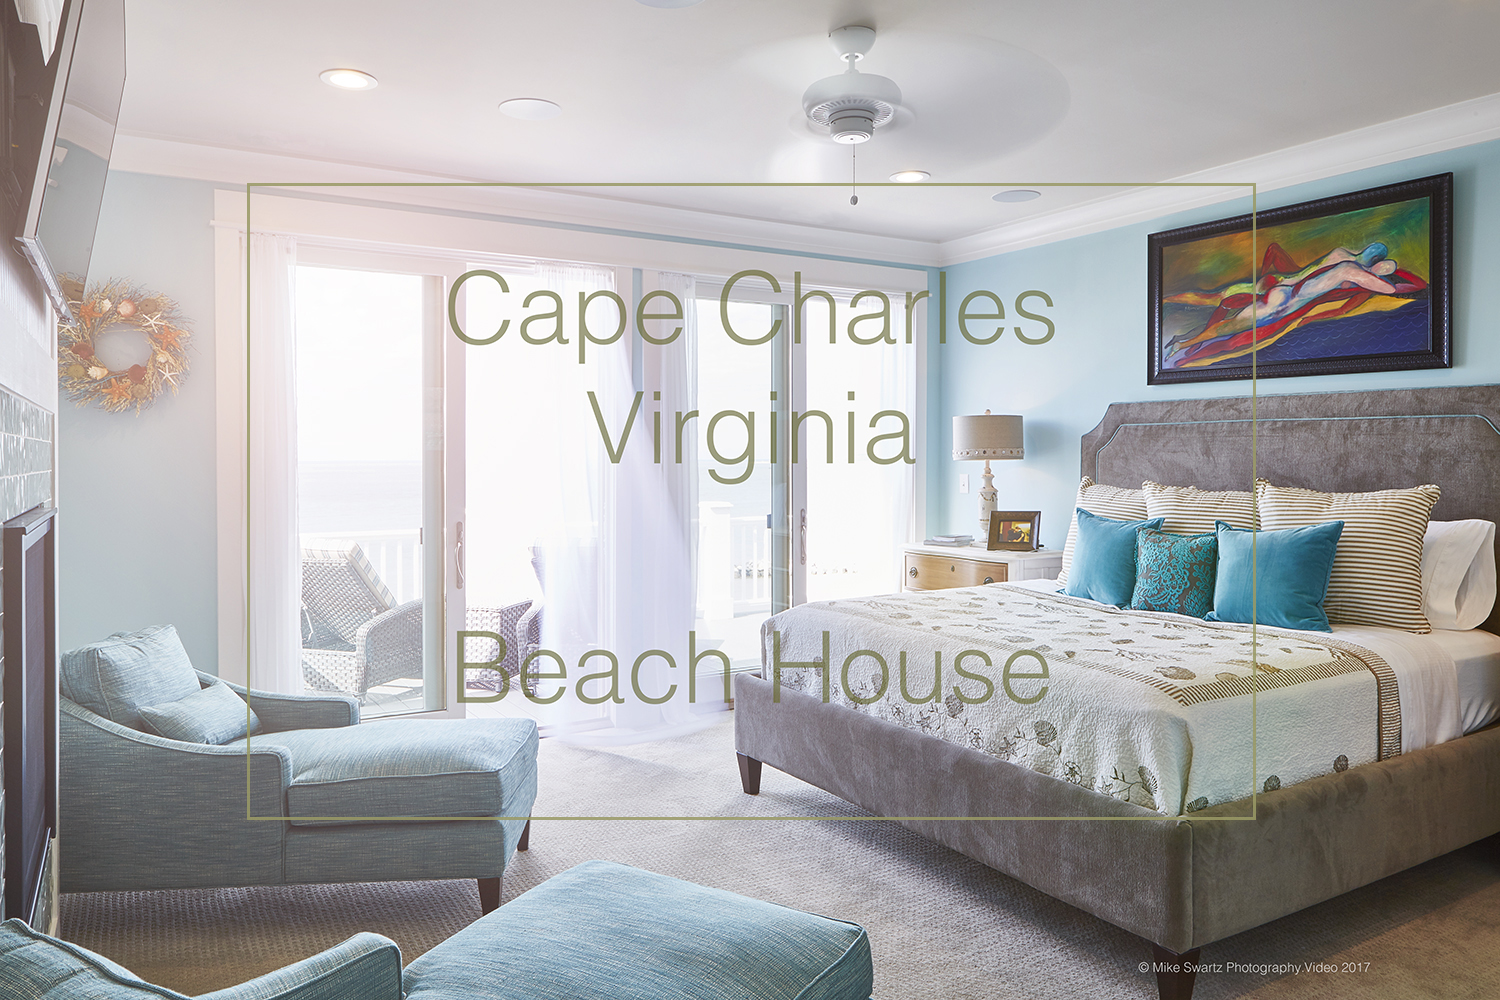 This stunning beach front property is located in Cape Charles, Virginia. Beach House was part of a fourteen day shoot on twelve different properties. Cape Charles is located within Virginia's Eastern Shore on the beautiful Chesapeake Bay.